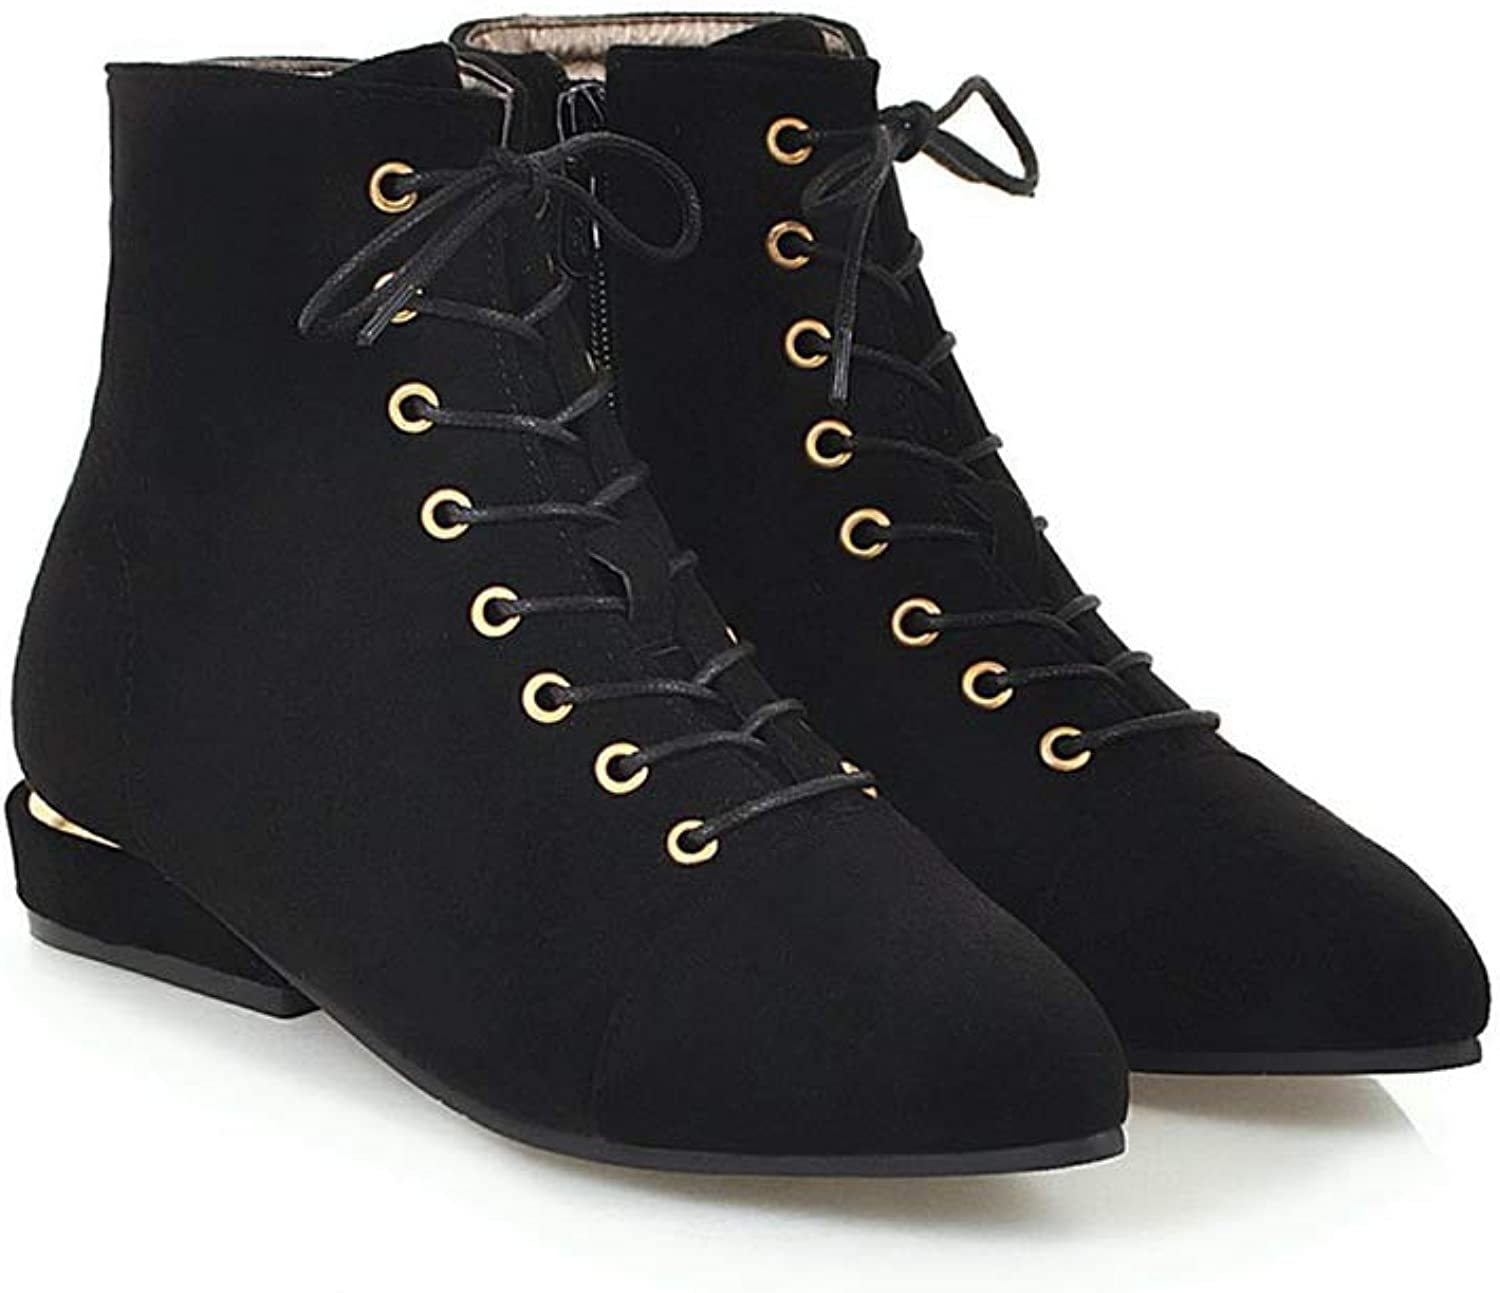 Sam Carle Women Boots, Fashion Solid color Lace Up Low Thick Heel Pointed Toe Ankle Boots